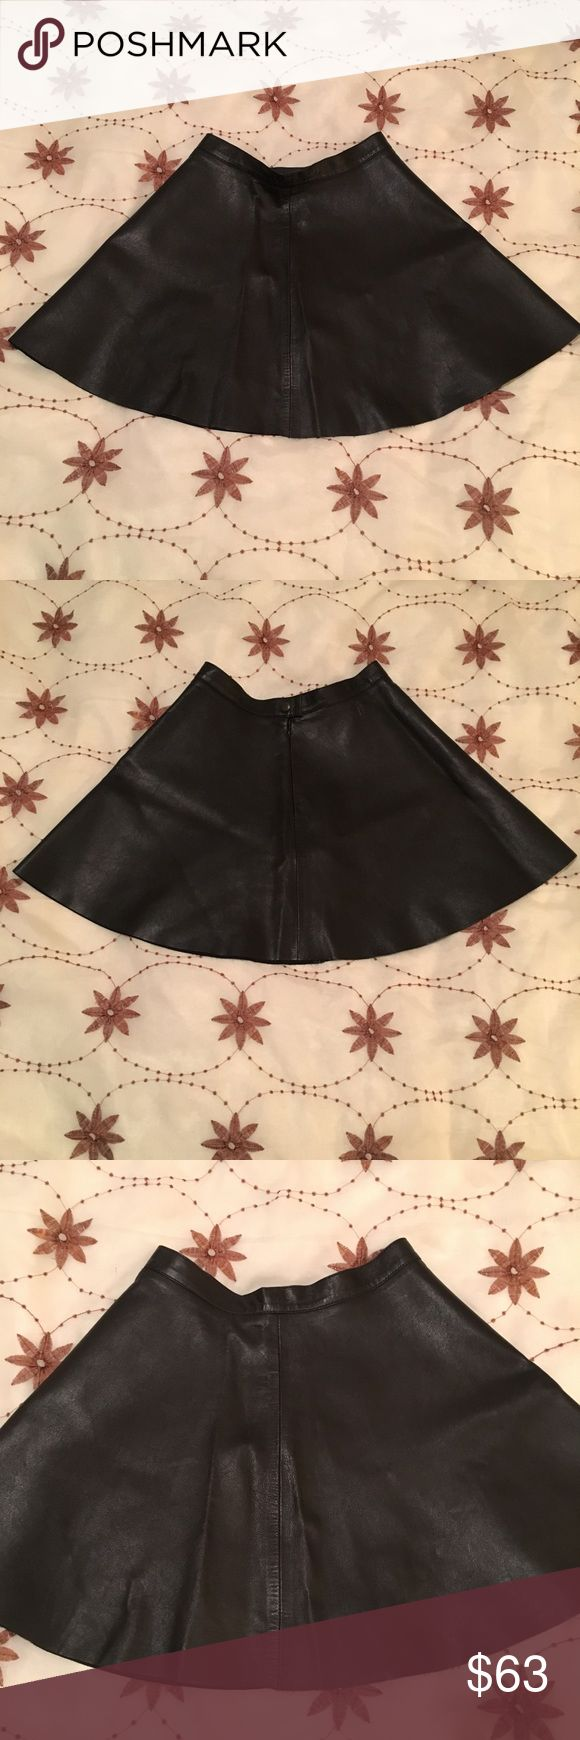 "AMERICAN APPAREL 100% LAMBSKIN LEATHER SKIRT AMERICAN APPAREL LAMBSKIN LEATHER SKIRT WITH A ZIPET ON THE BACK. ""LIKE NEW"" CONDITION ‼️🔥‼️ American Apparel Skirts Mini"